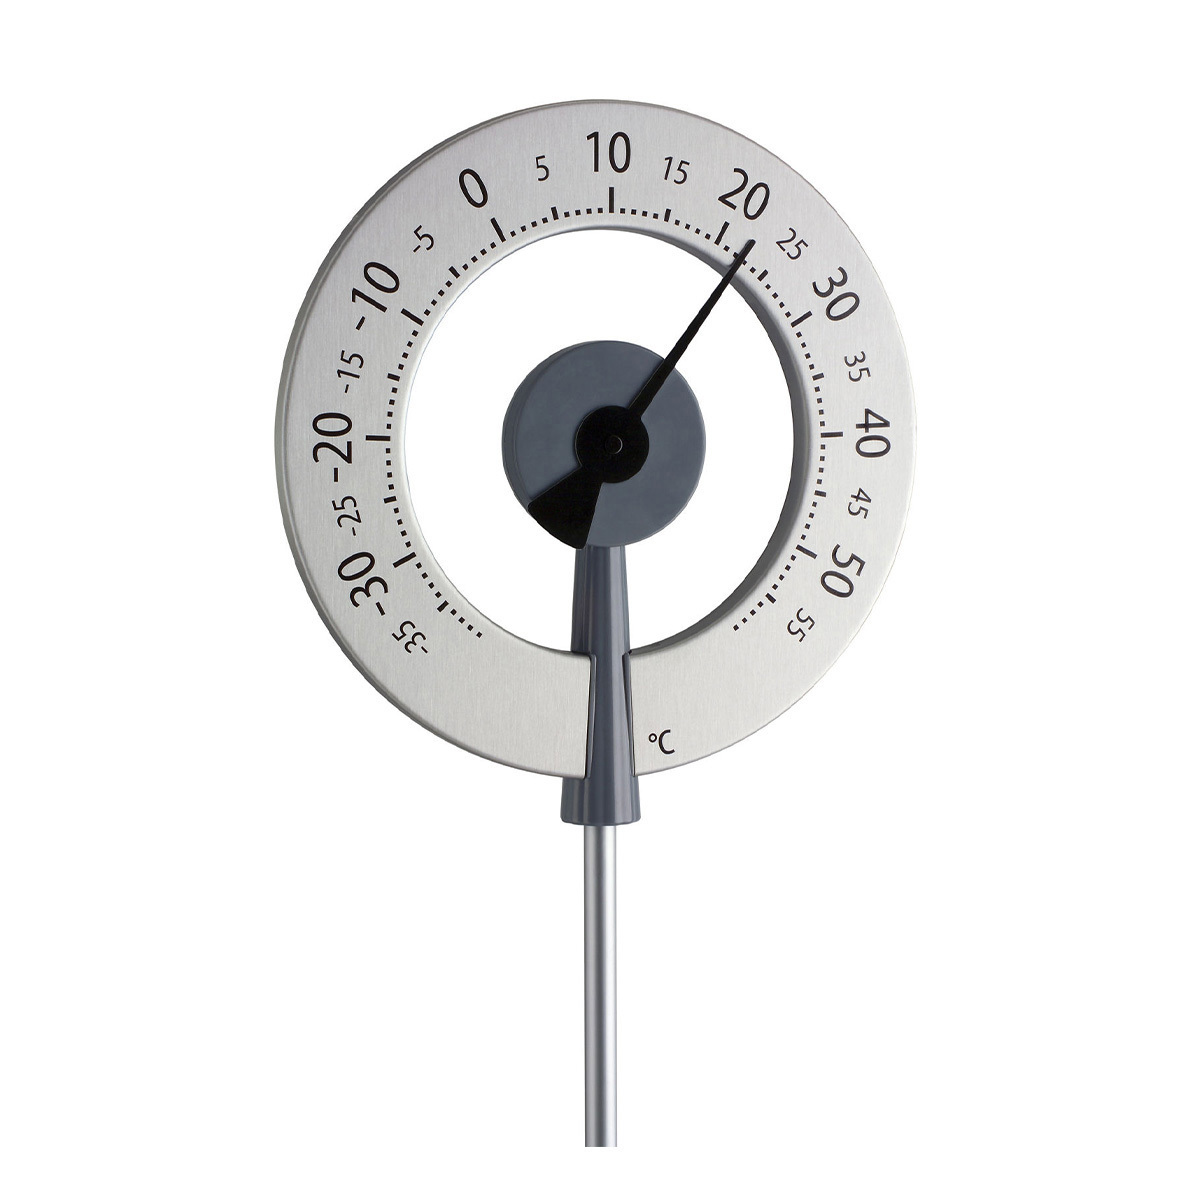 12-2055-10-analoges-design-gartenthermometer-lollipop-1200x1200px.jpg